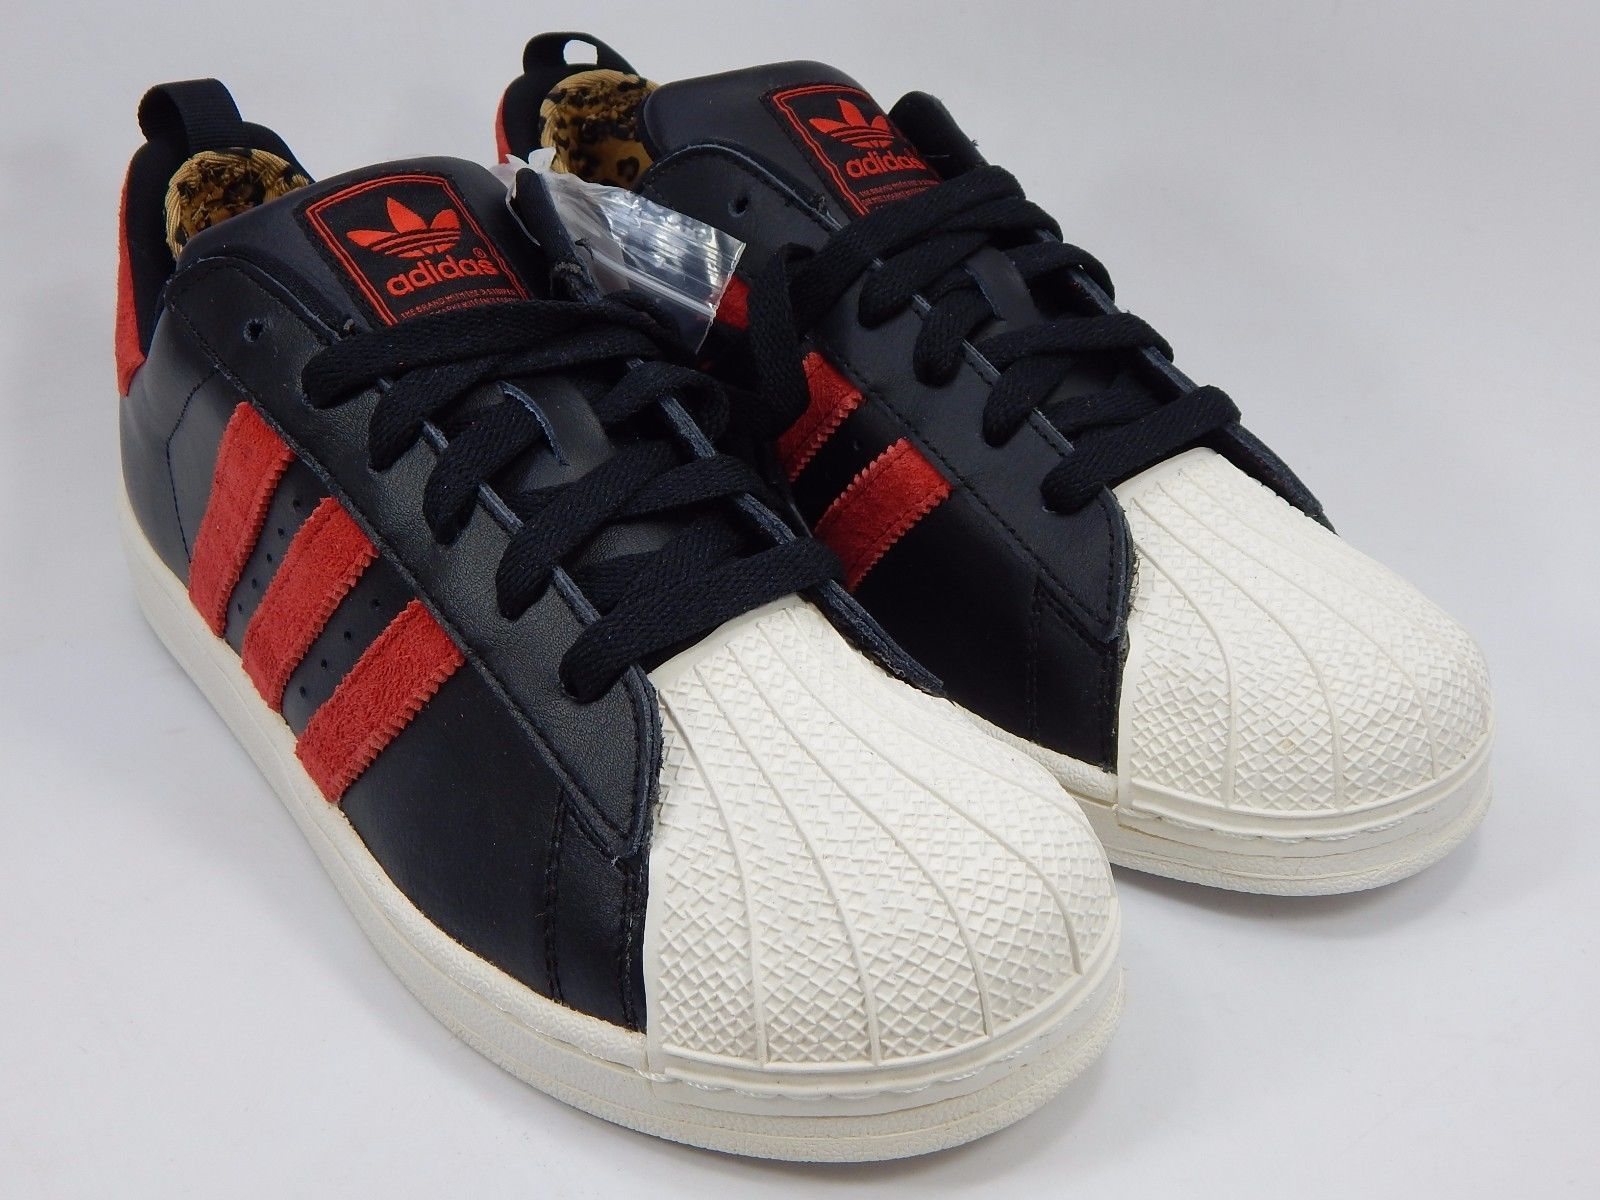 Adidas Superstar J Big Kid's Girl's Youth Shoes Size US 6.5 Y EU 39 1/3 D74444